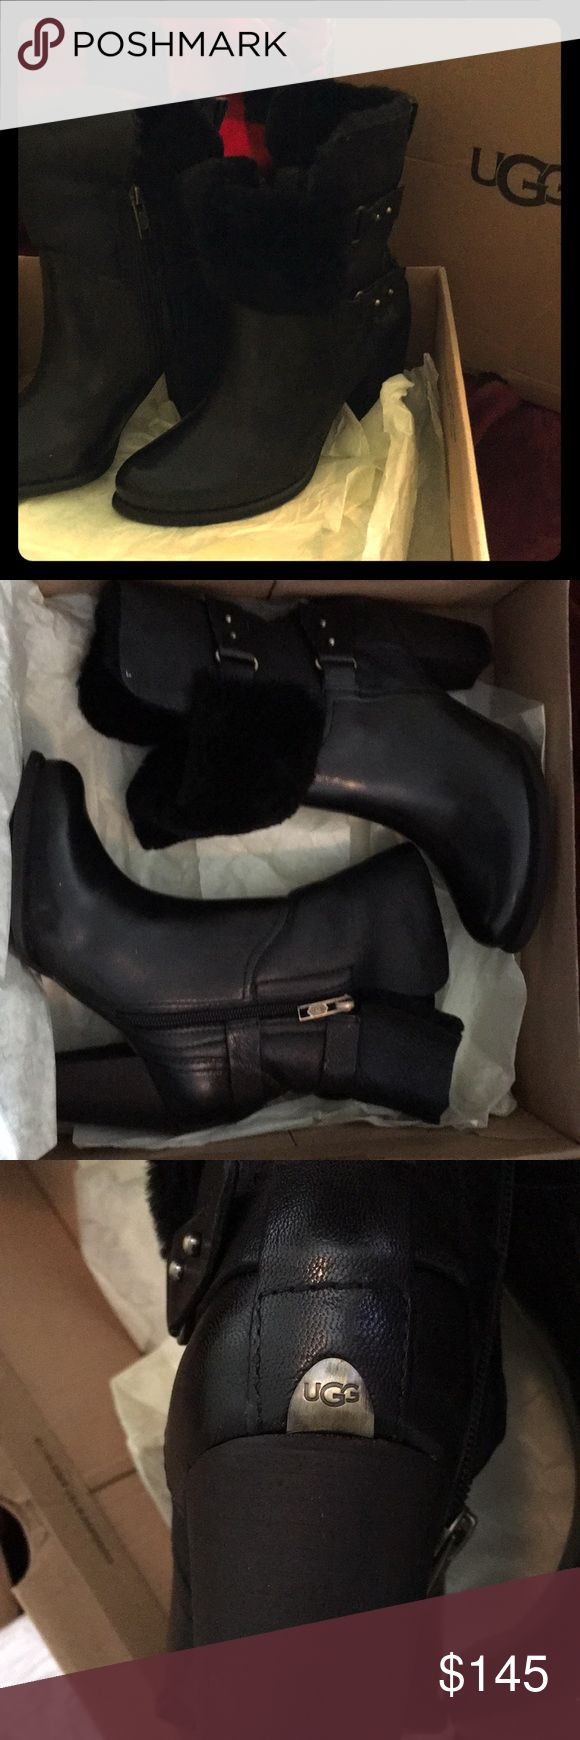 "Ugg Jayne black leather/shearling boots NEW IN BOX 100% authentic UGG BOOTS   2""heel available in black and brown UGG Shoes Heeled Boots"